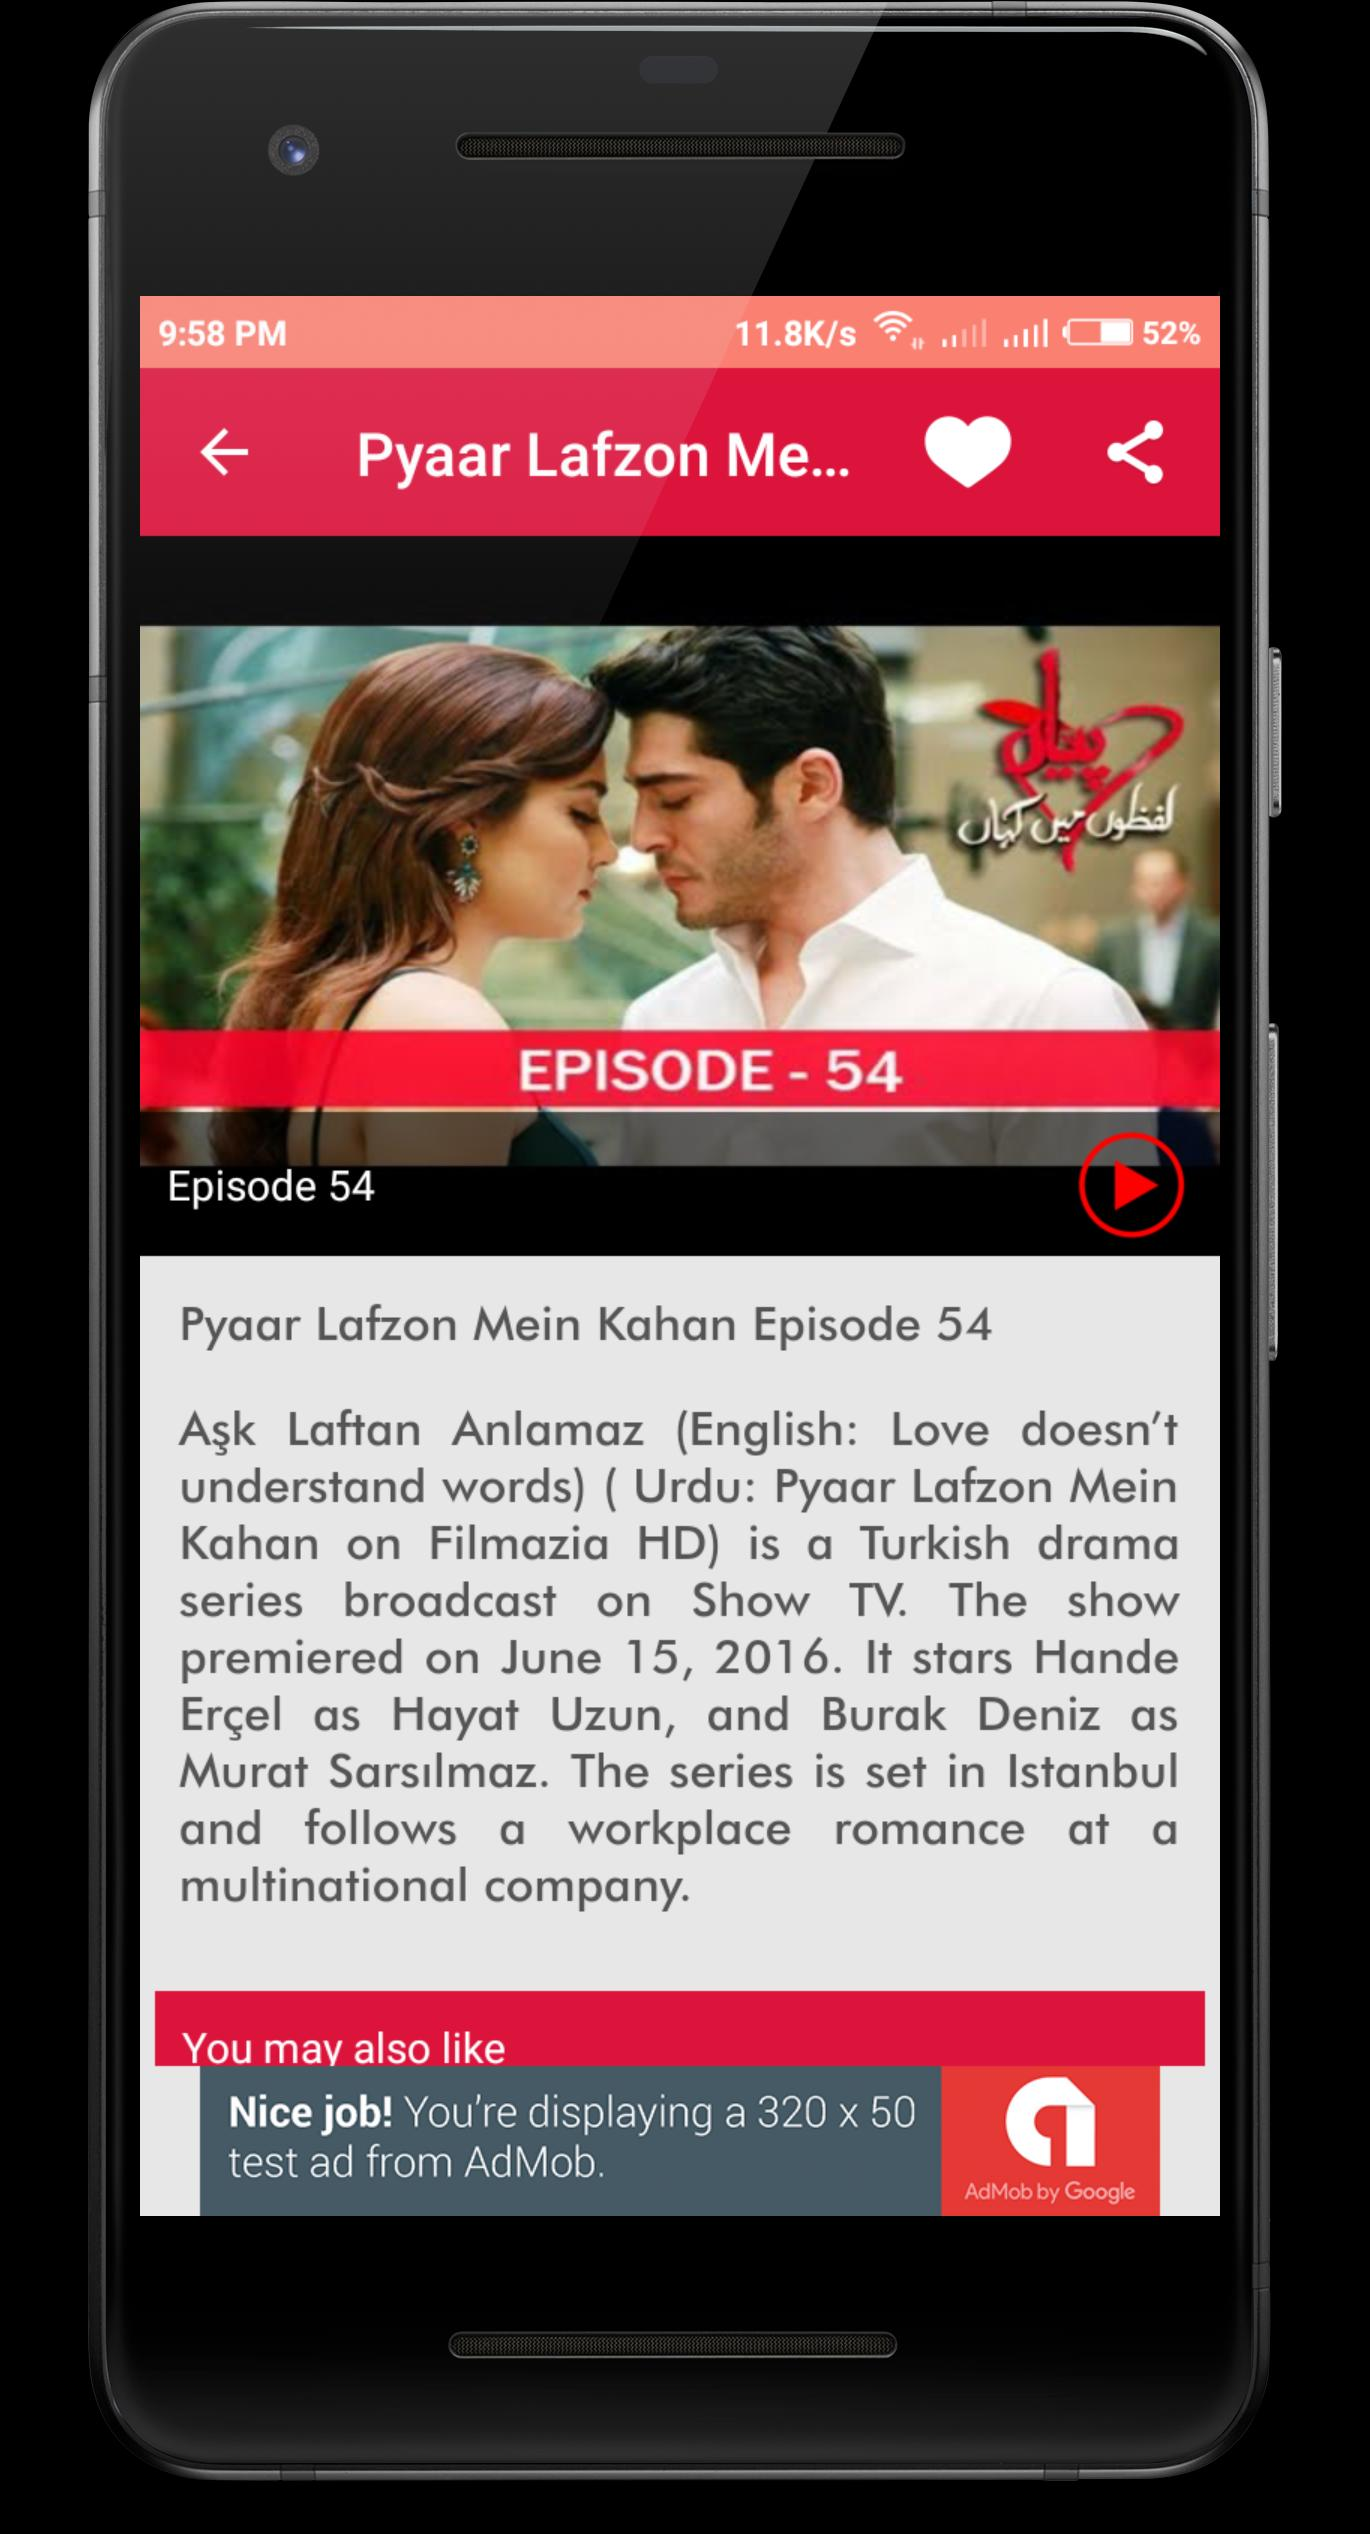 Pyaar Lafzon Mein Kahan for Android - APK Download